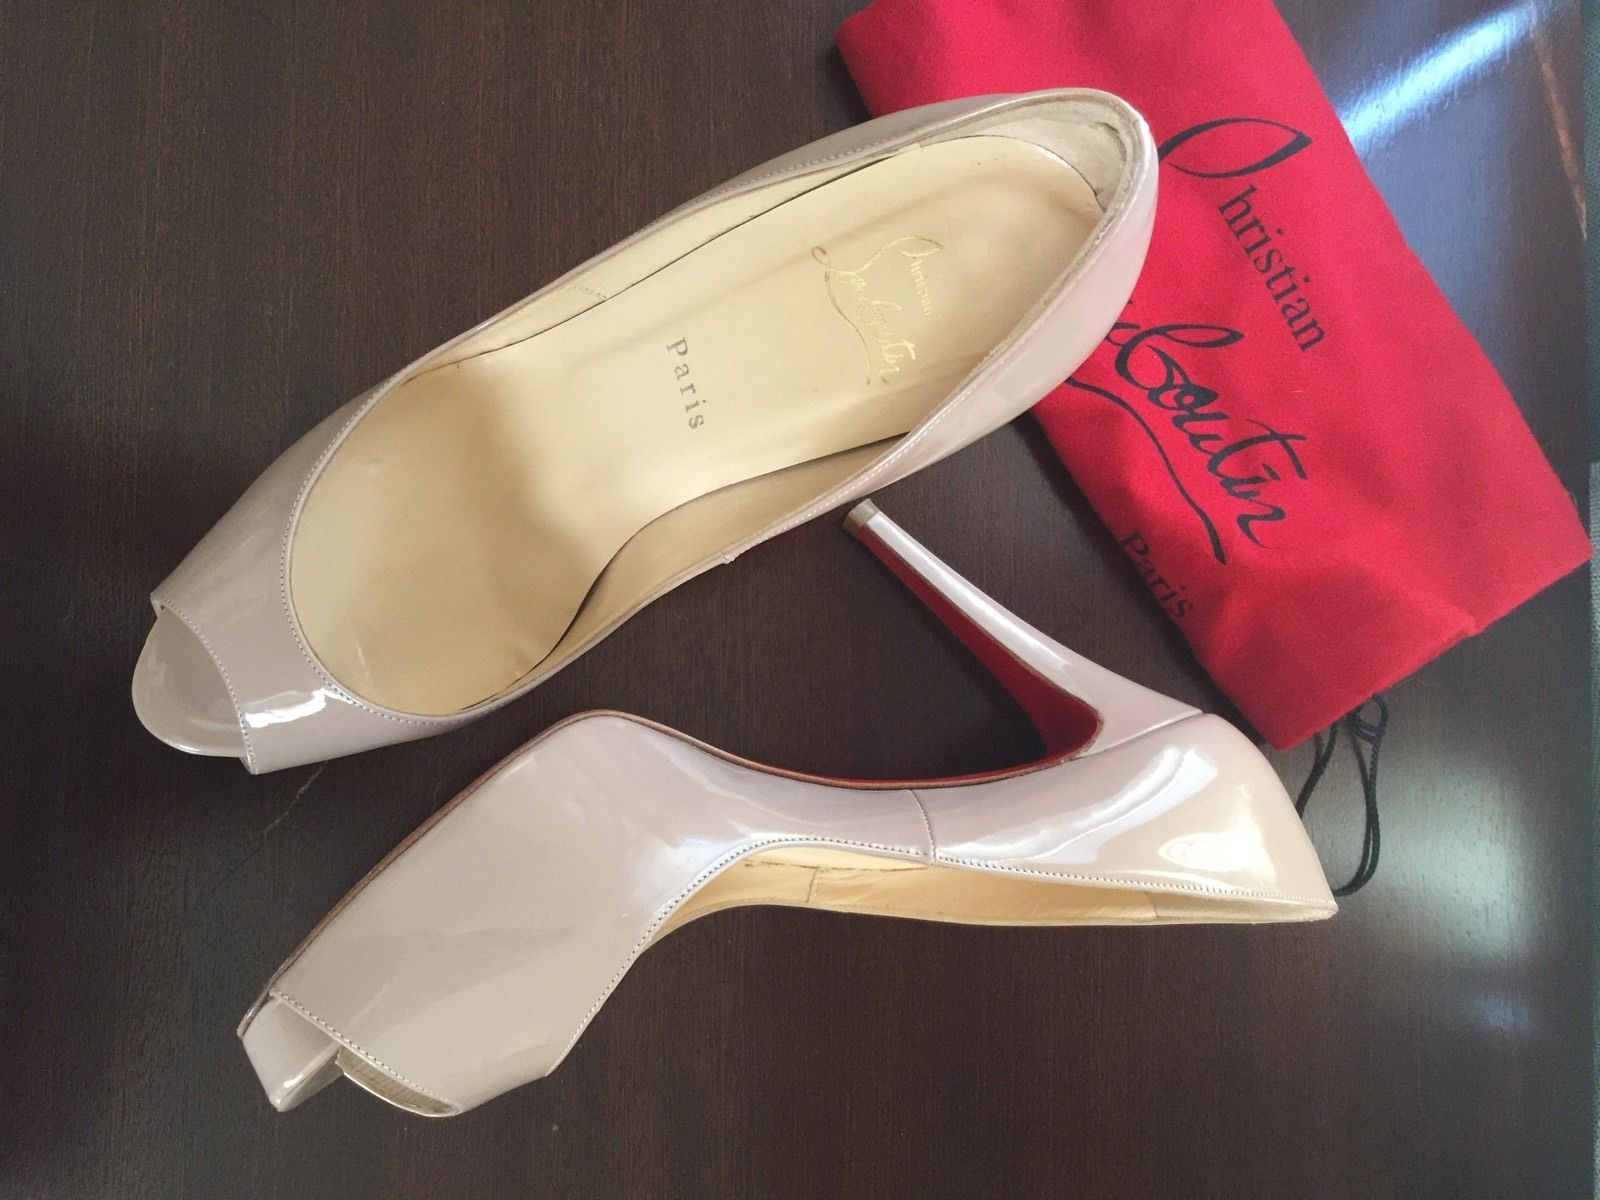 sports shoes 6128f f0b60 Christian Louboutin Very Prive 100 Patent Nude Red Sole Pump ...